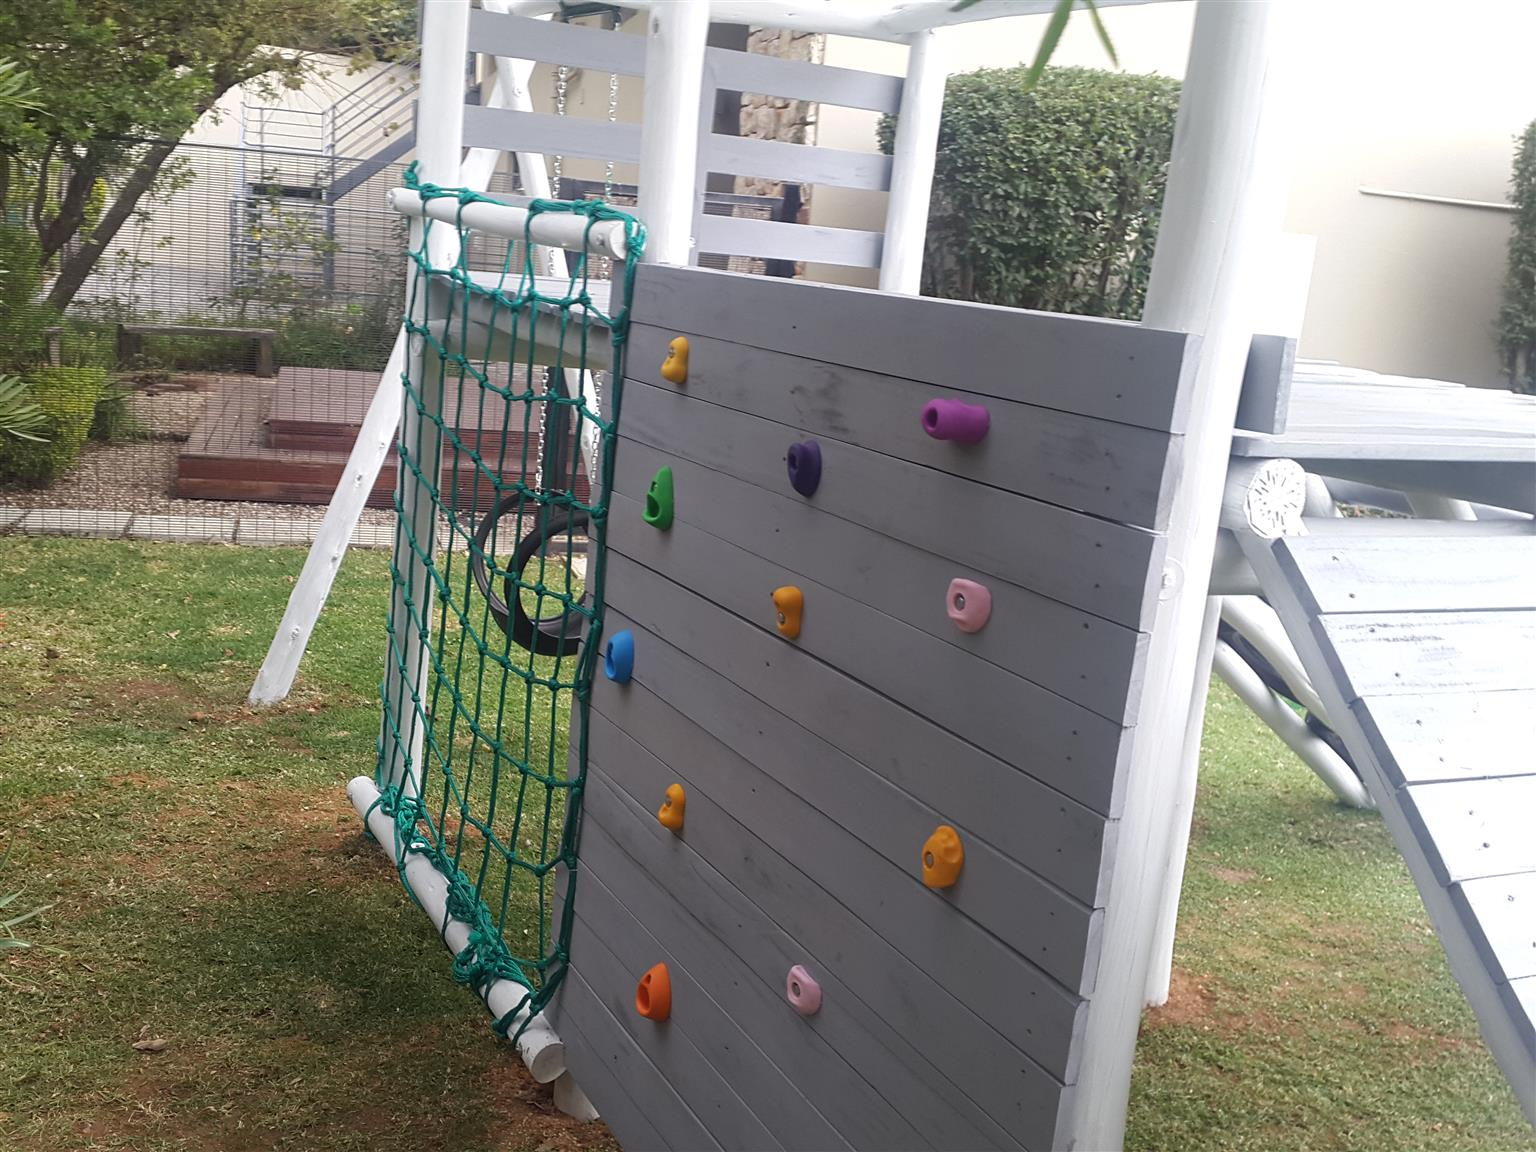 New jungle gym R12 500.00 free delivery